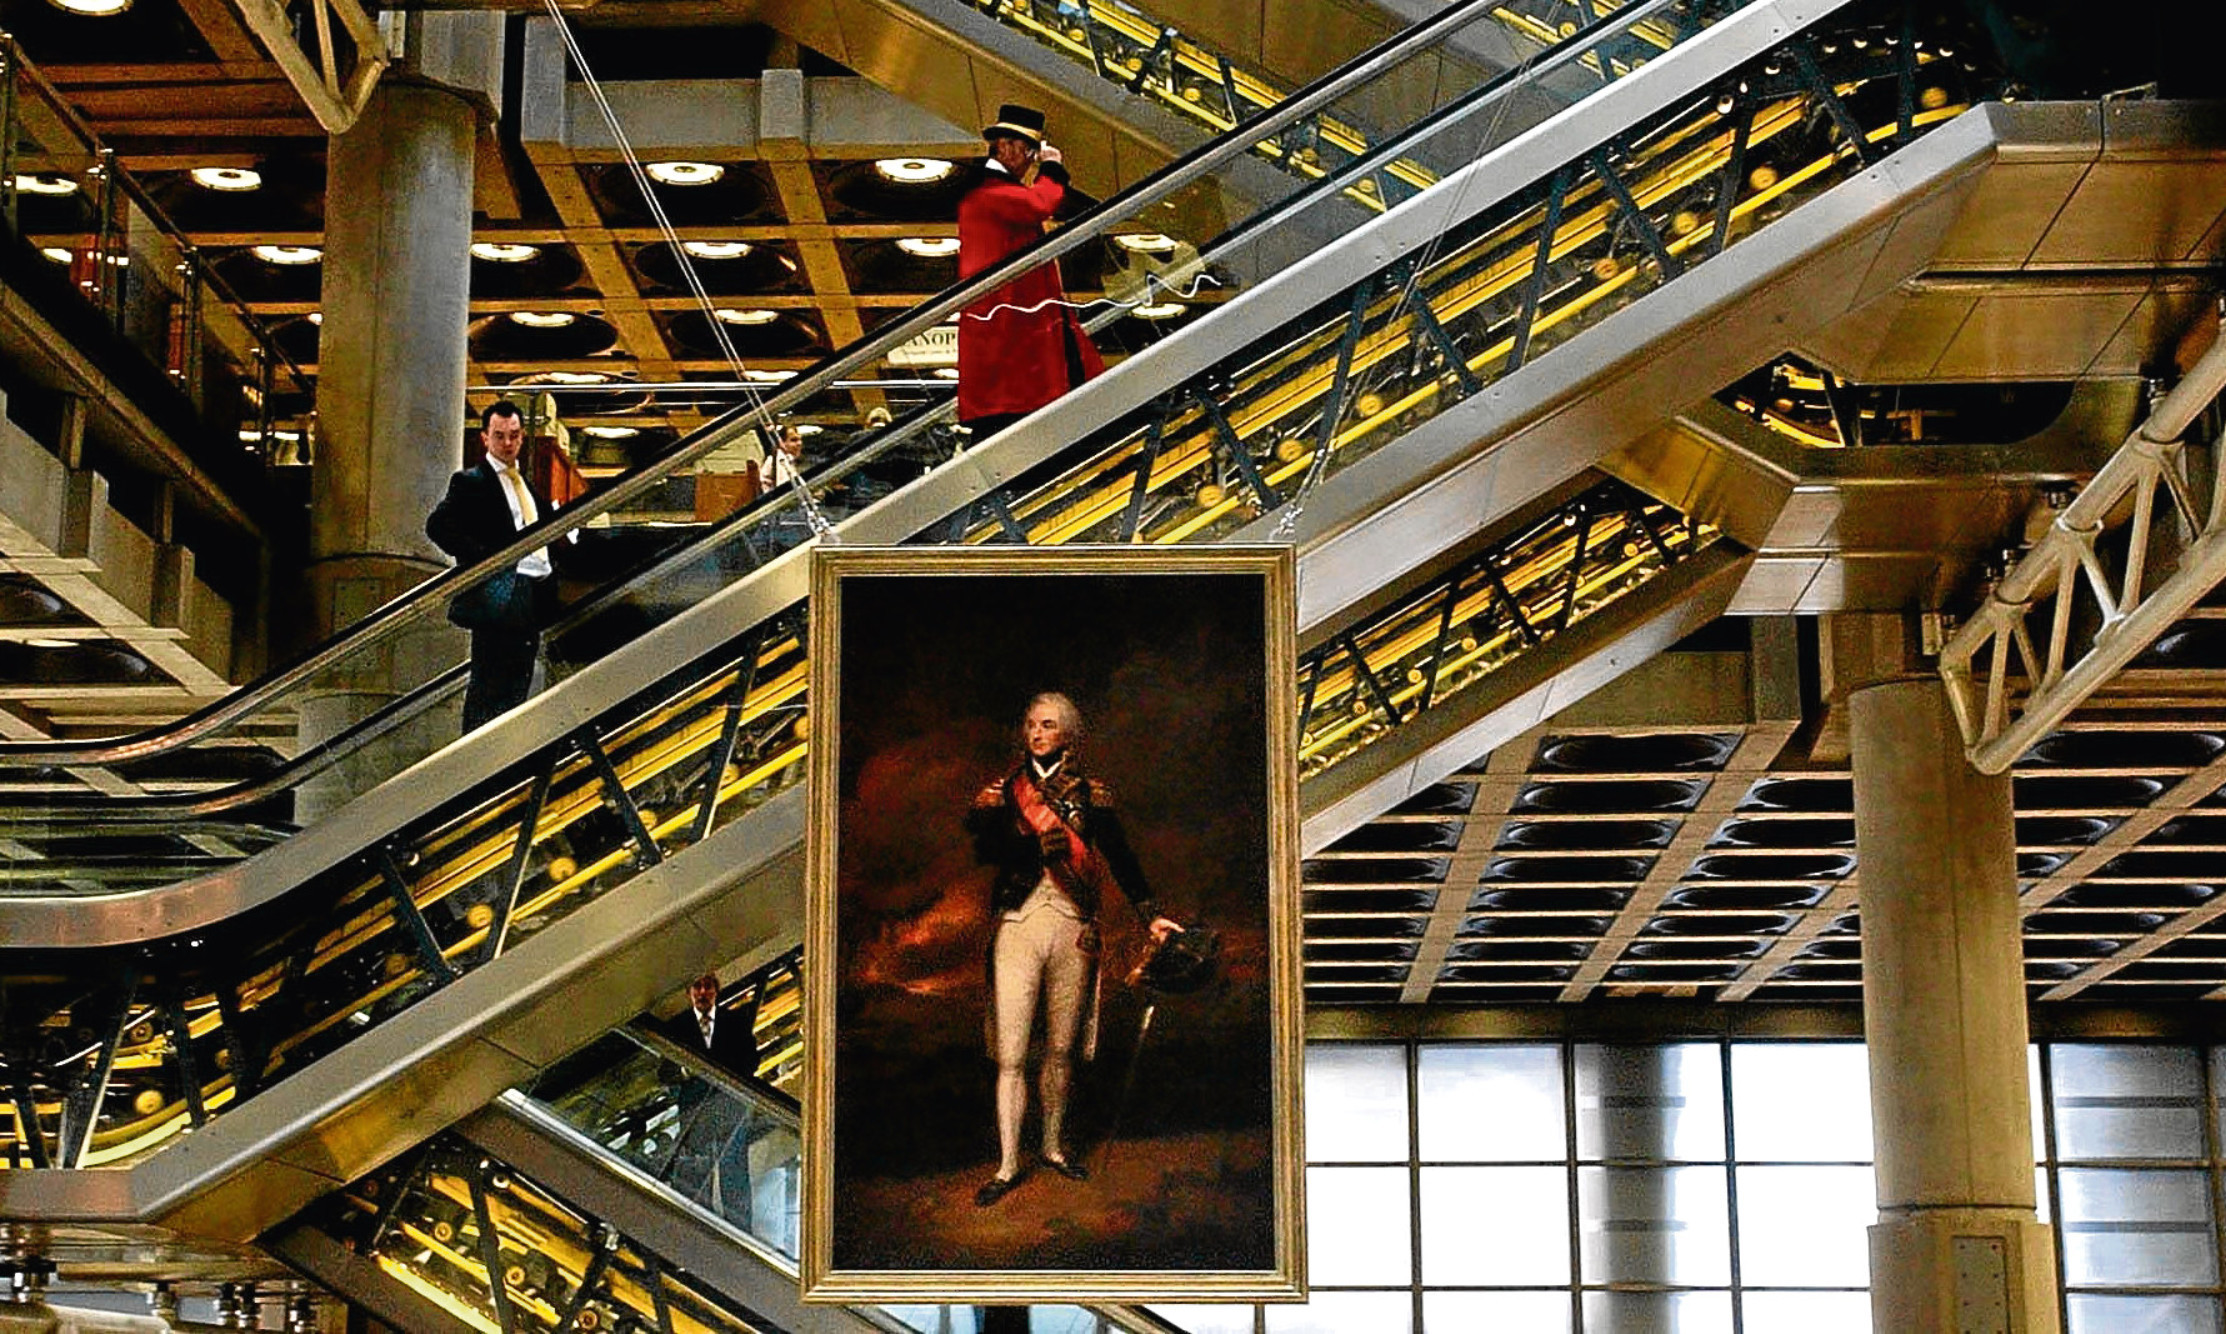 A portrait of Lord Nelson hangs in the Lloyd's of London building.